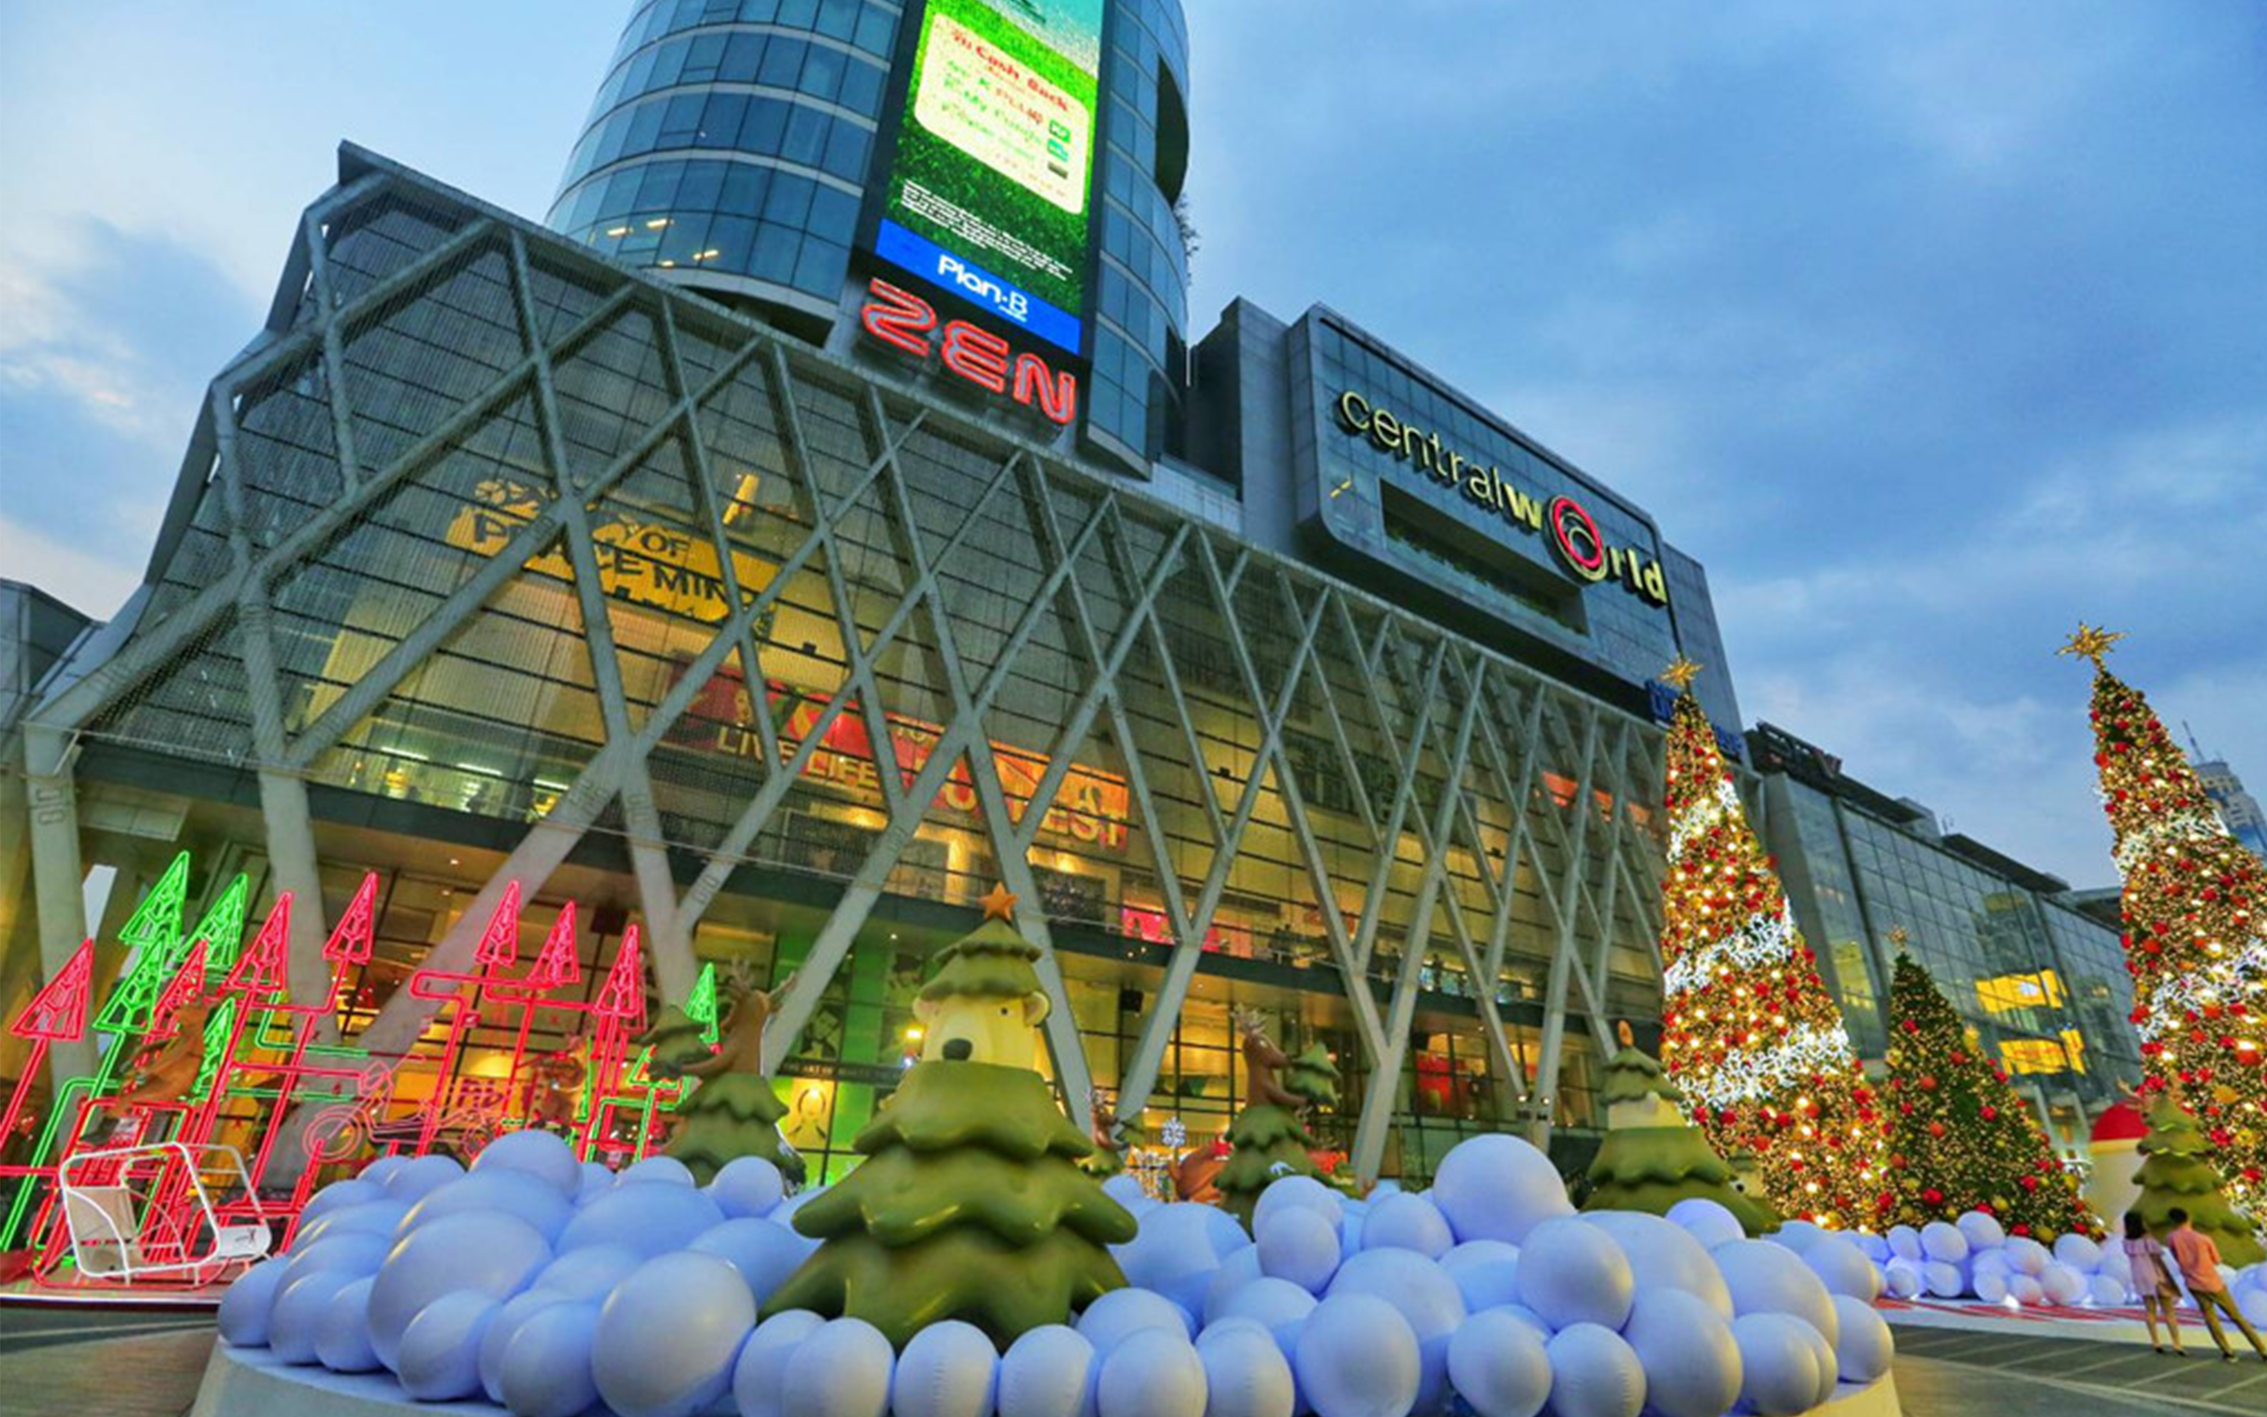 Easy Shopping Guide in CentralWorld, Bangkok